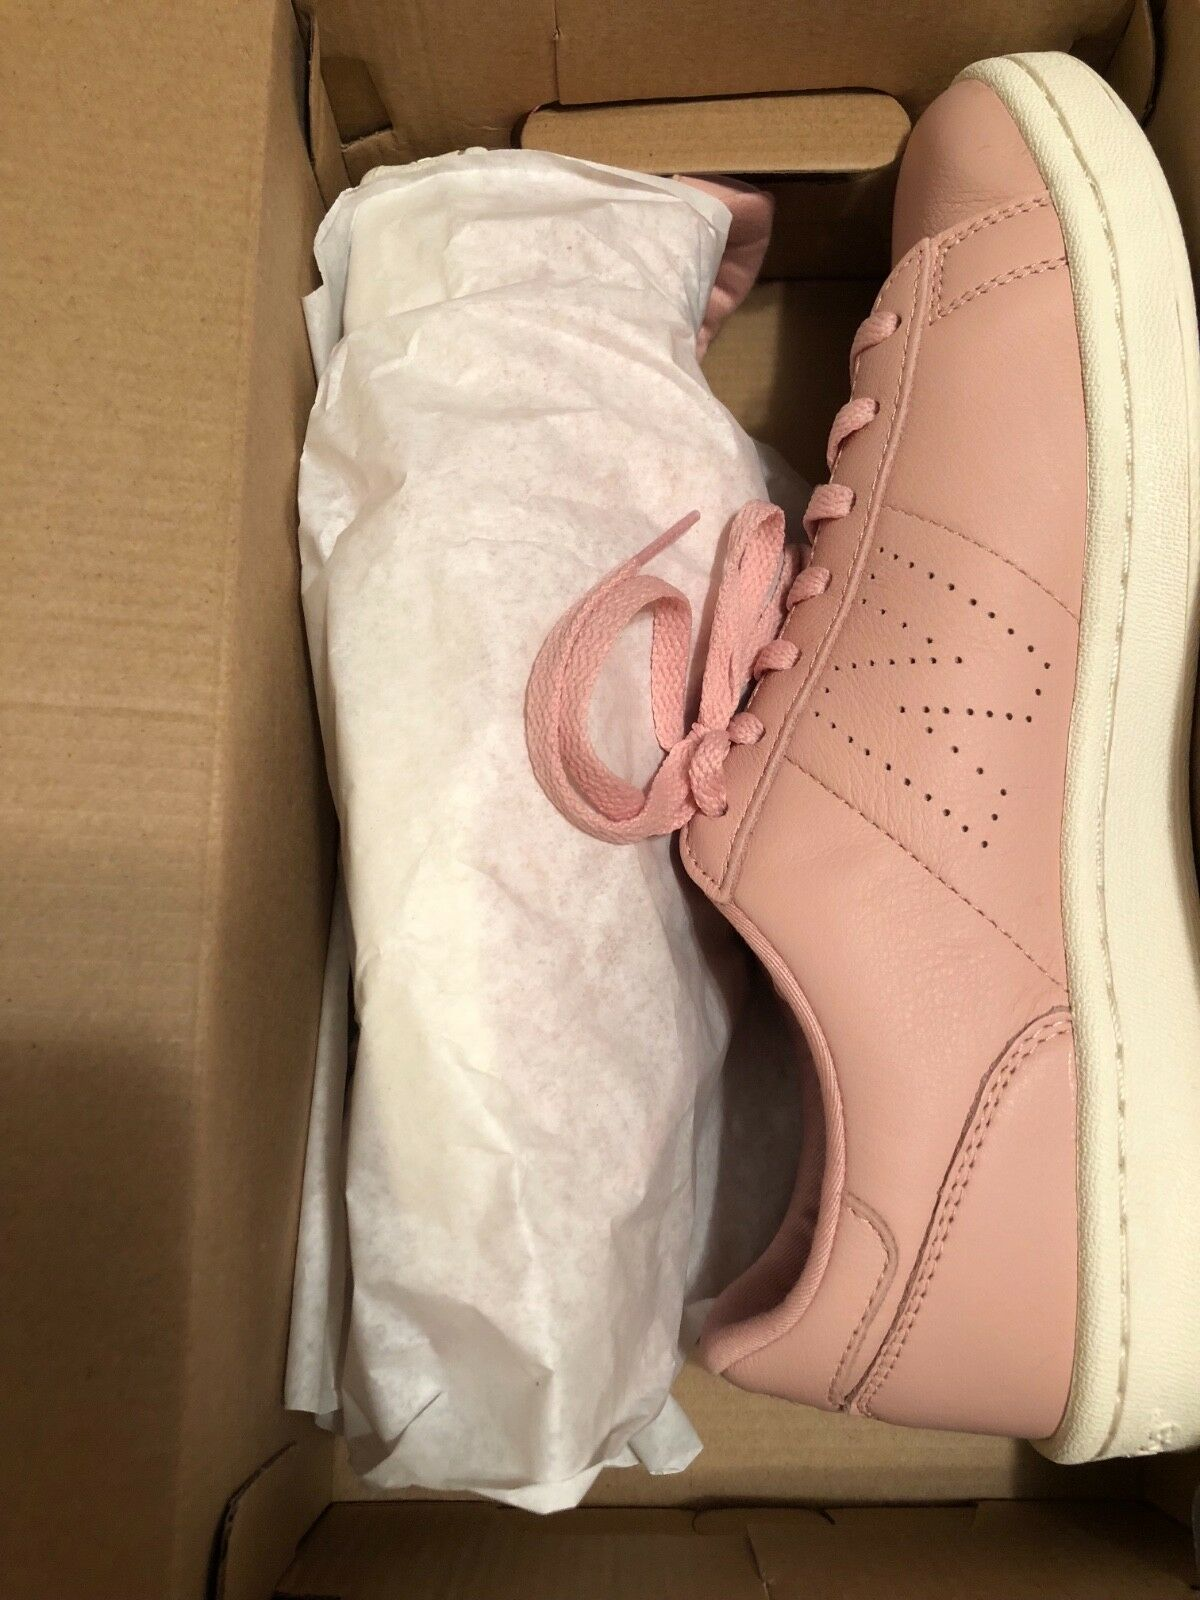 New J. Crew Woman's New Pink Balance® for J.Crew 791 Leder court shoe In Pink New 2840f0